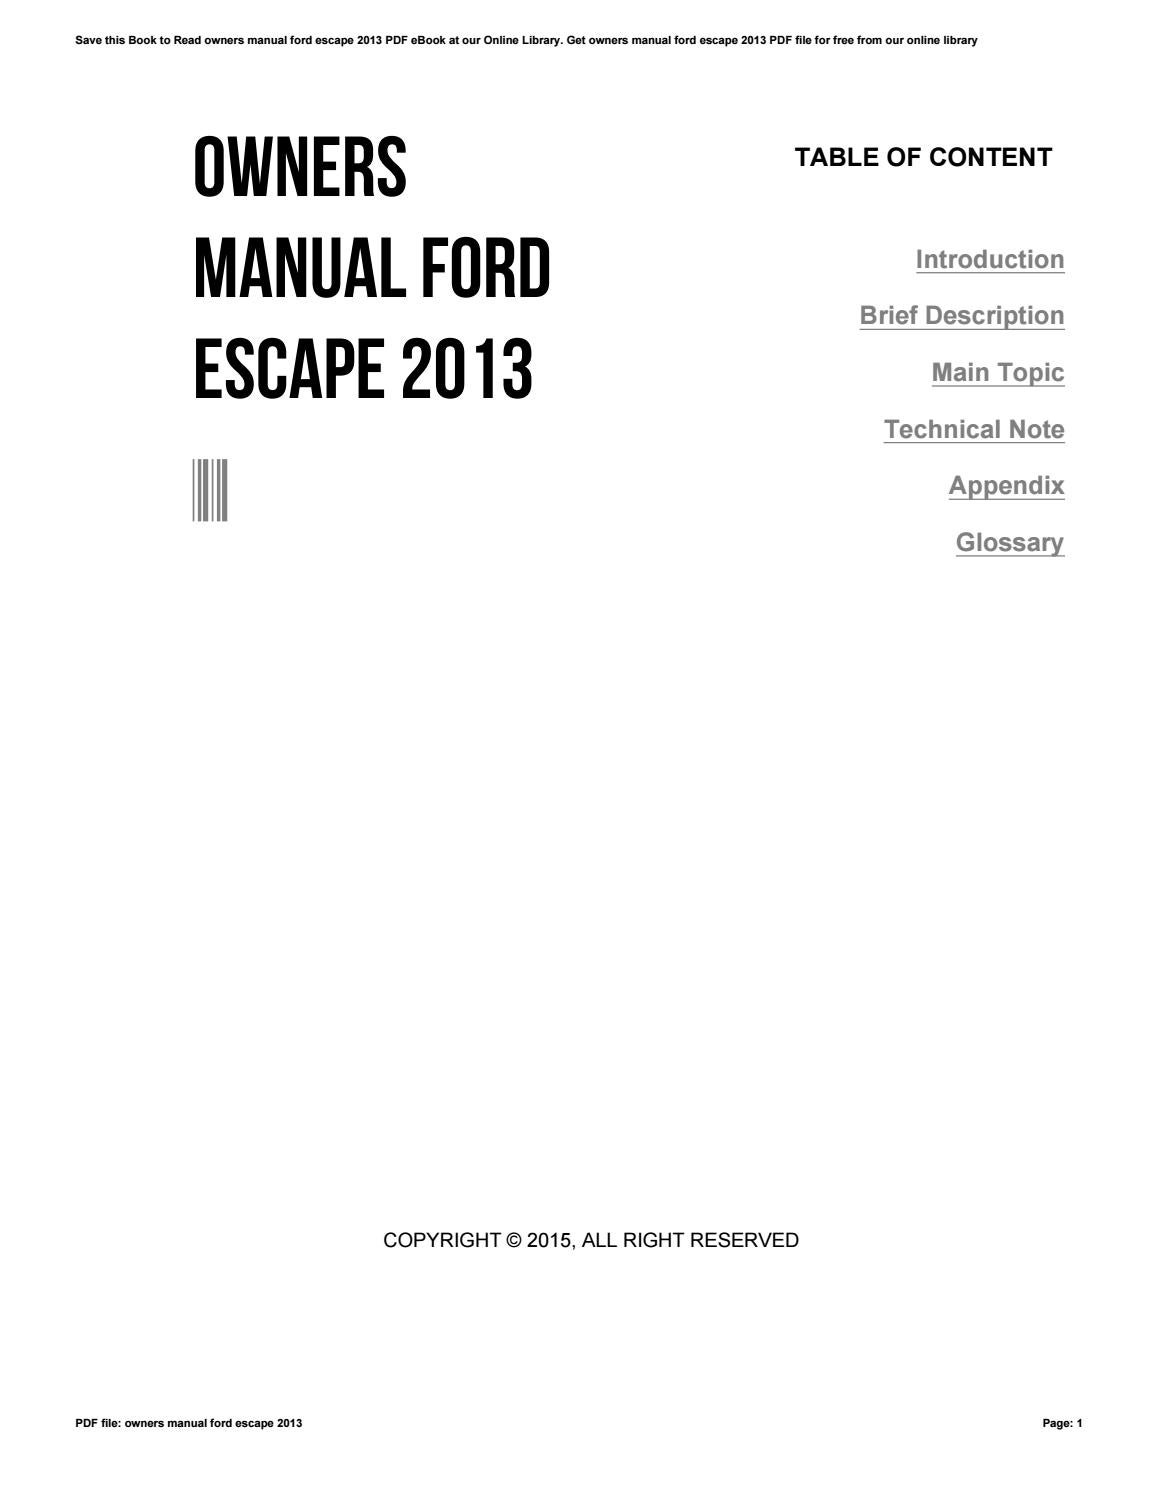 owners manual ford escape 2013 by dwse54